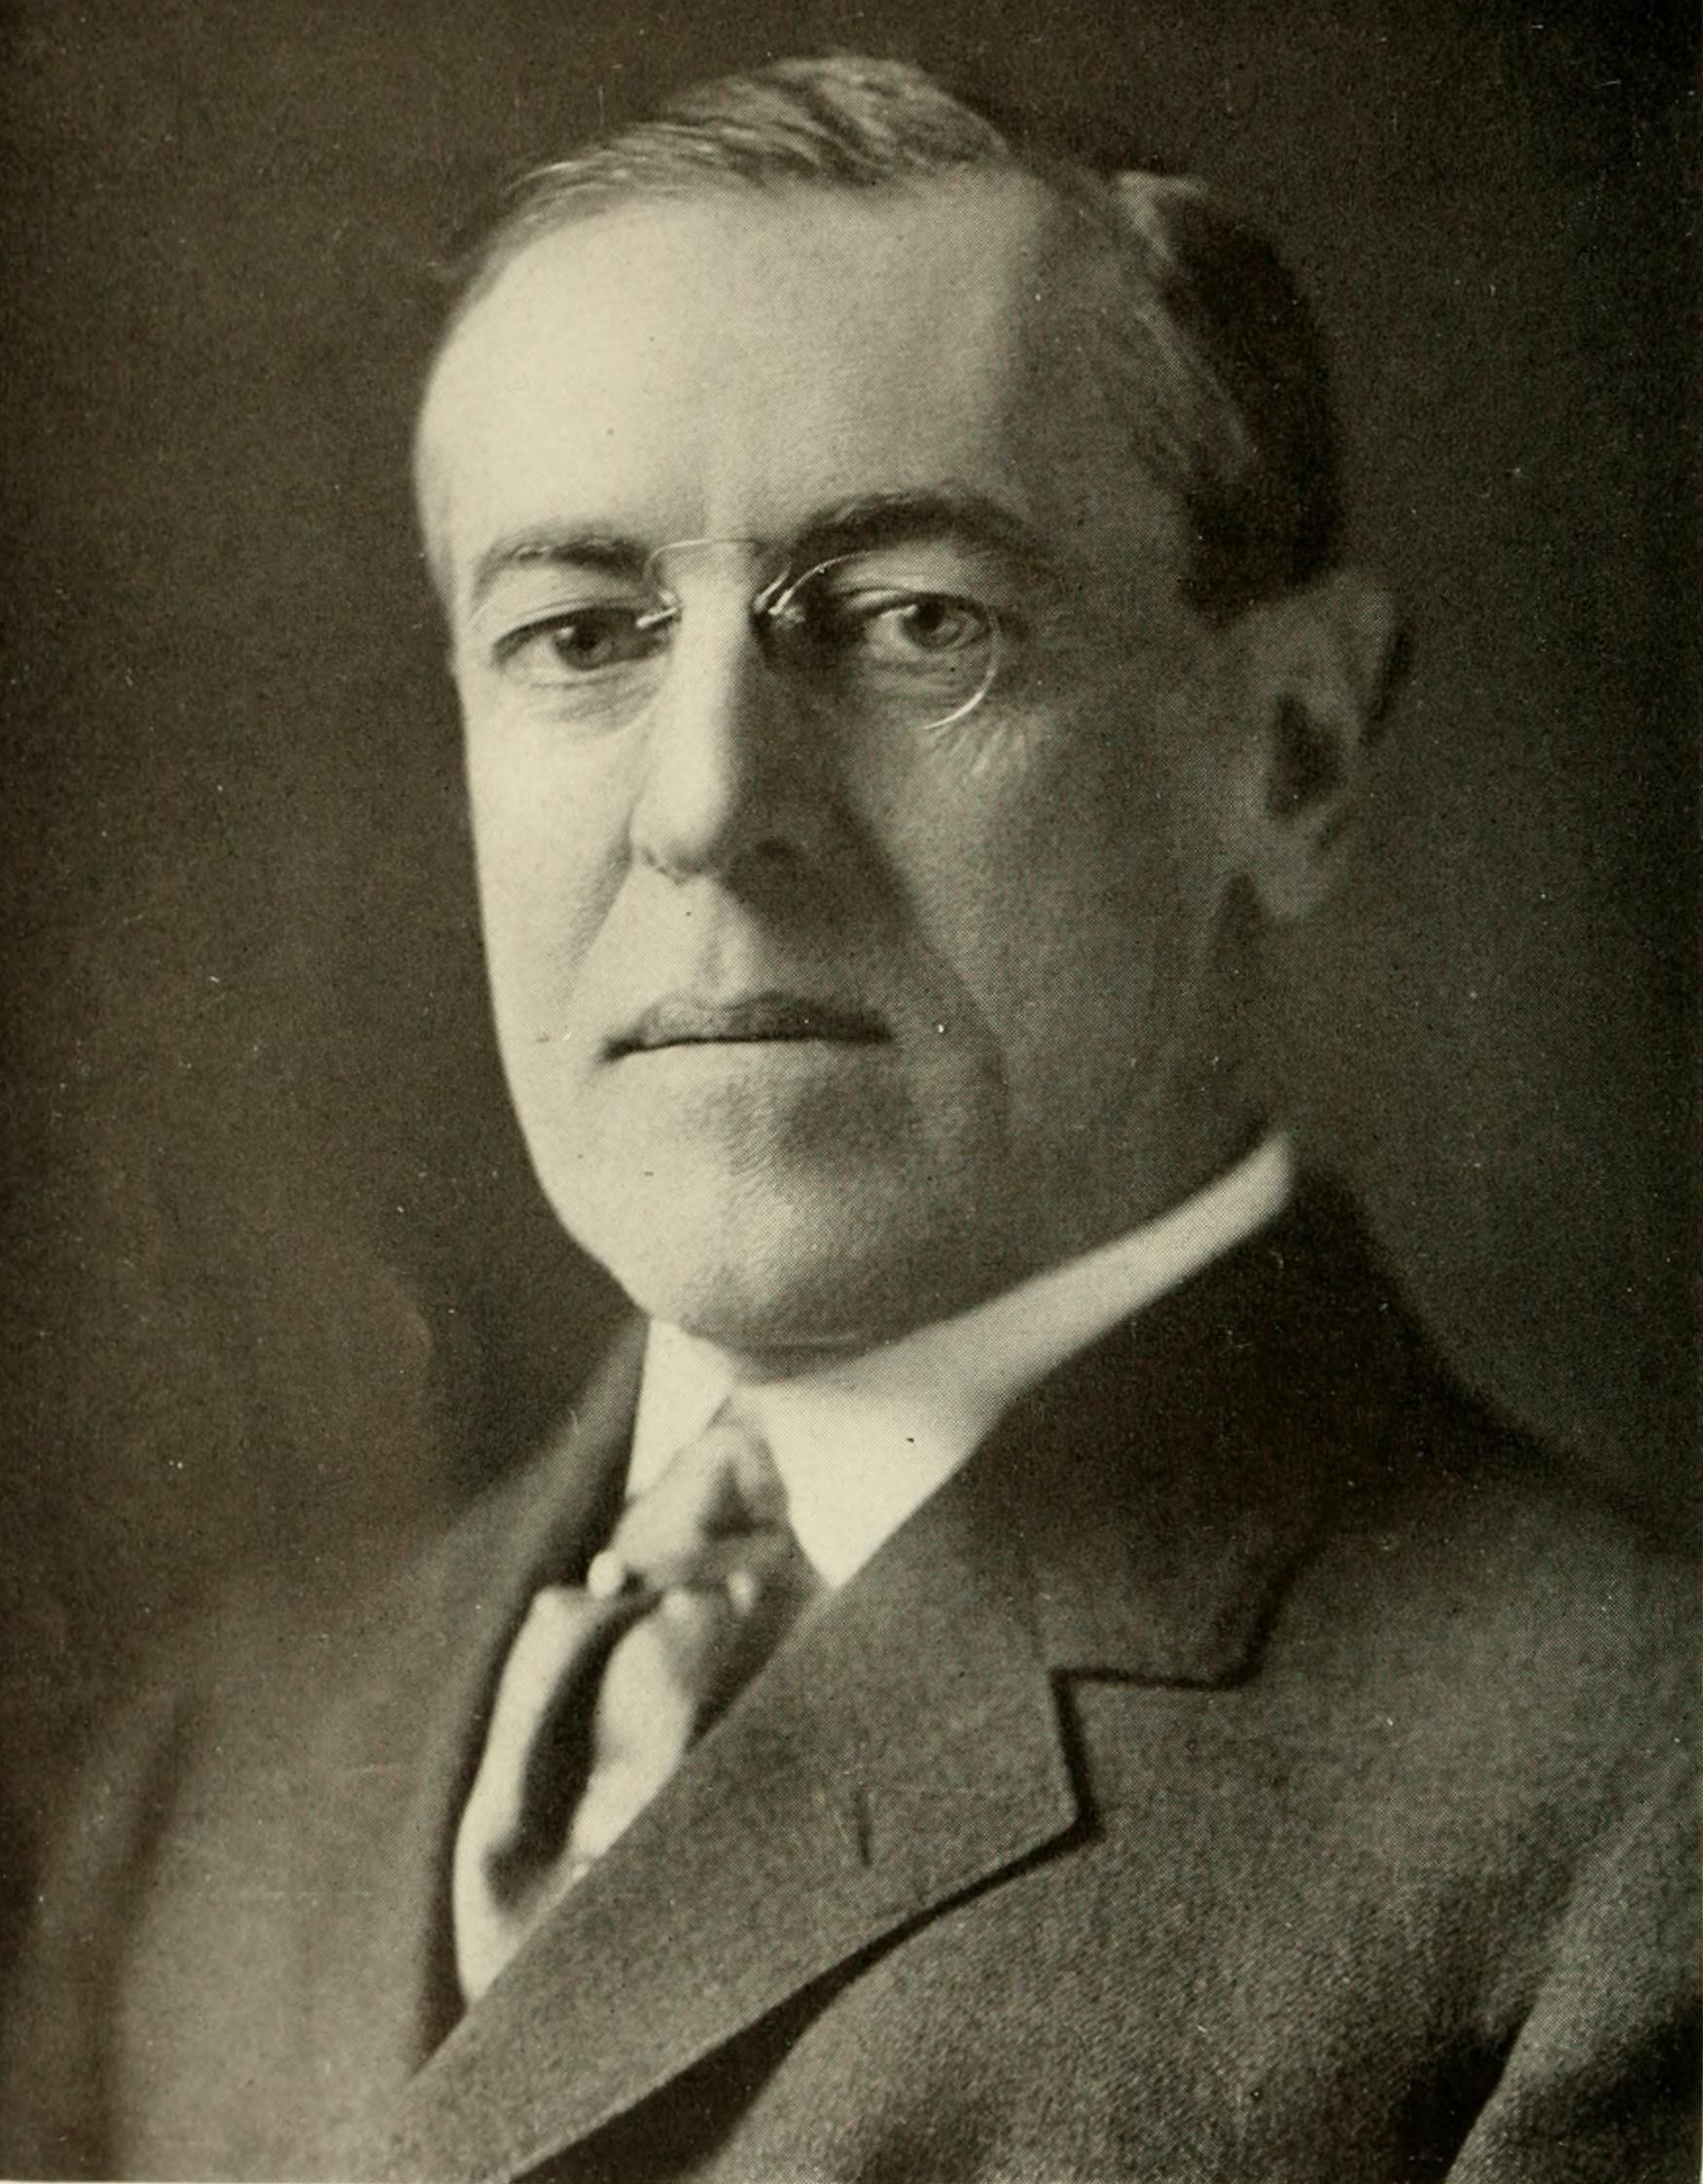 What should my research paper thesis statement be on Woodrow Wilson?